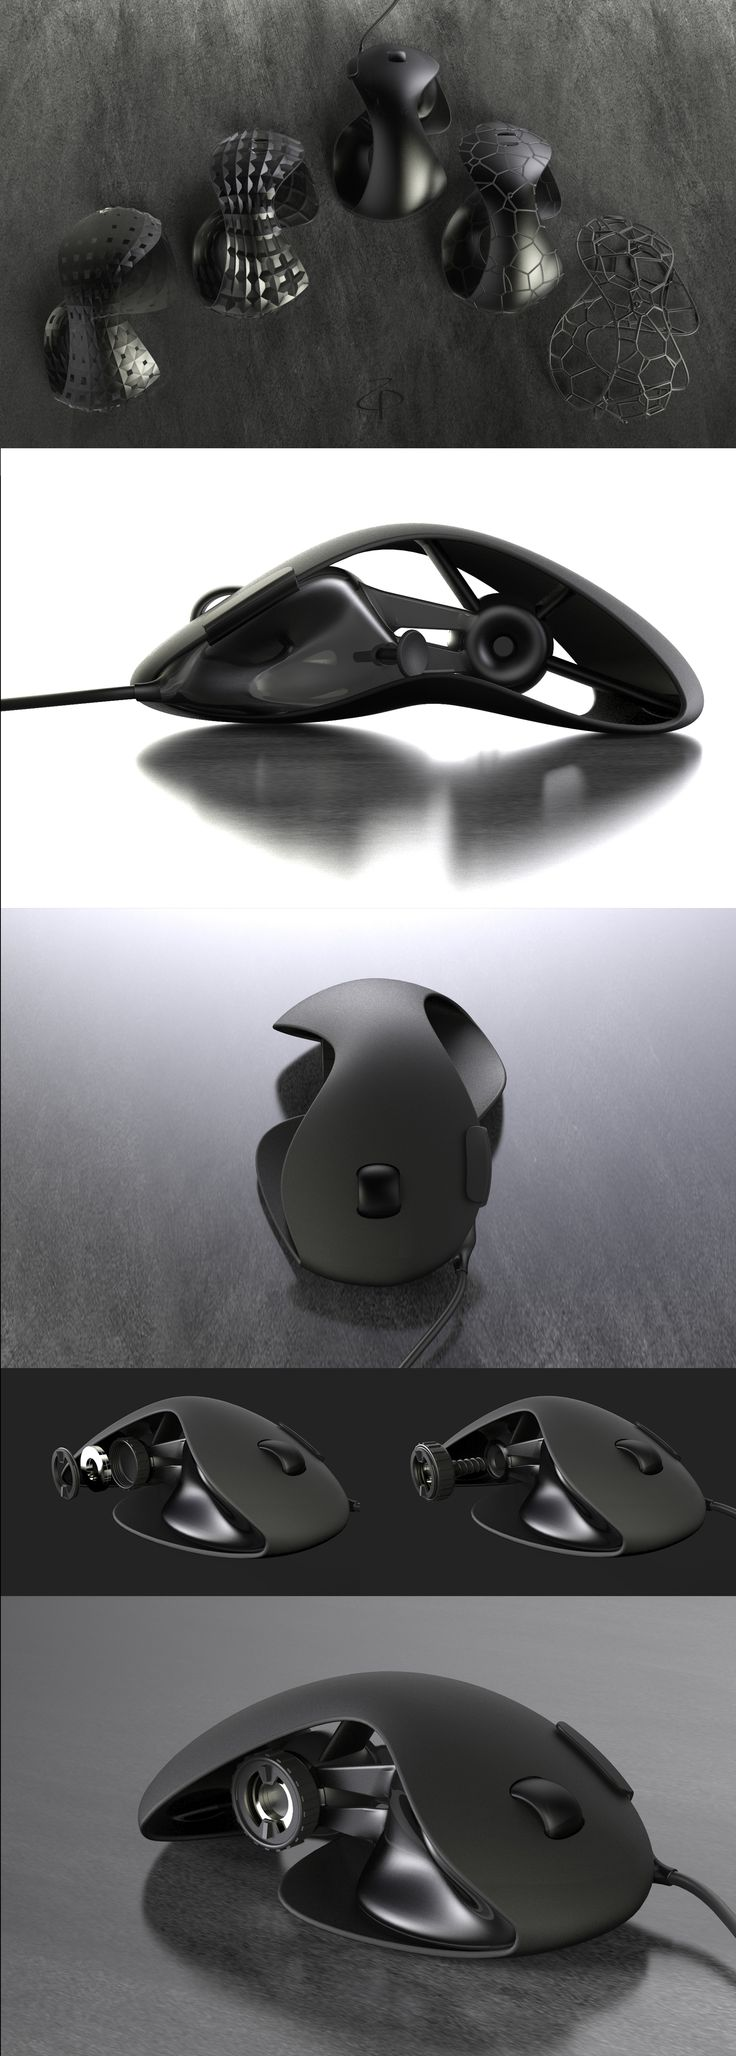 GAMIN MOUSE, pattern, voronoi, product/industrial design, individual corpus, adjustable size and weight, programmable g-joystick, scroll ring, sliding, ergonomic, pull reload button. grasshopper